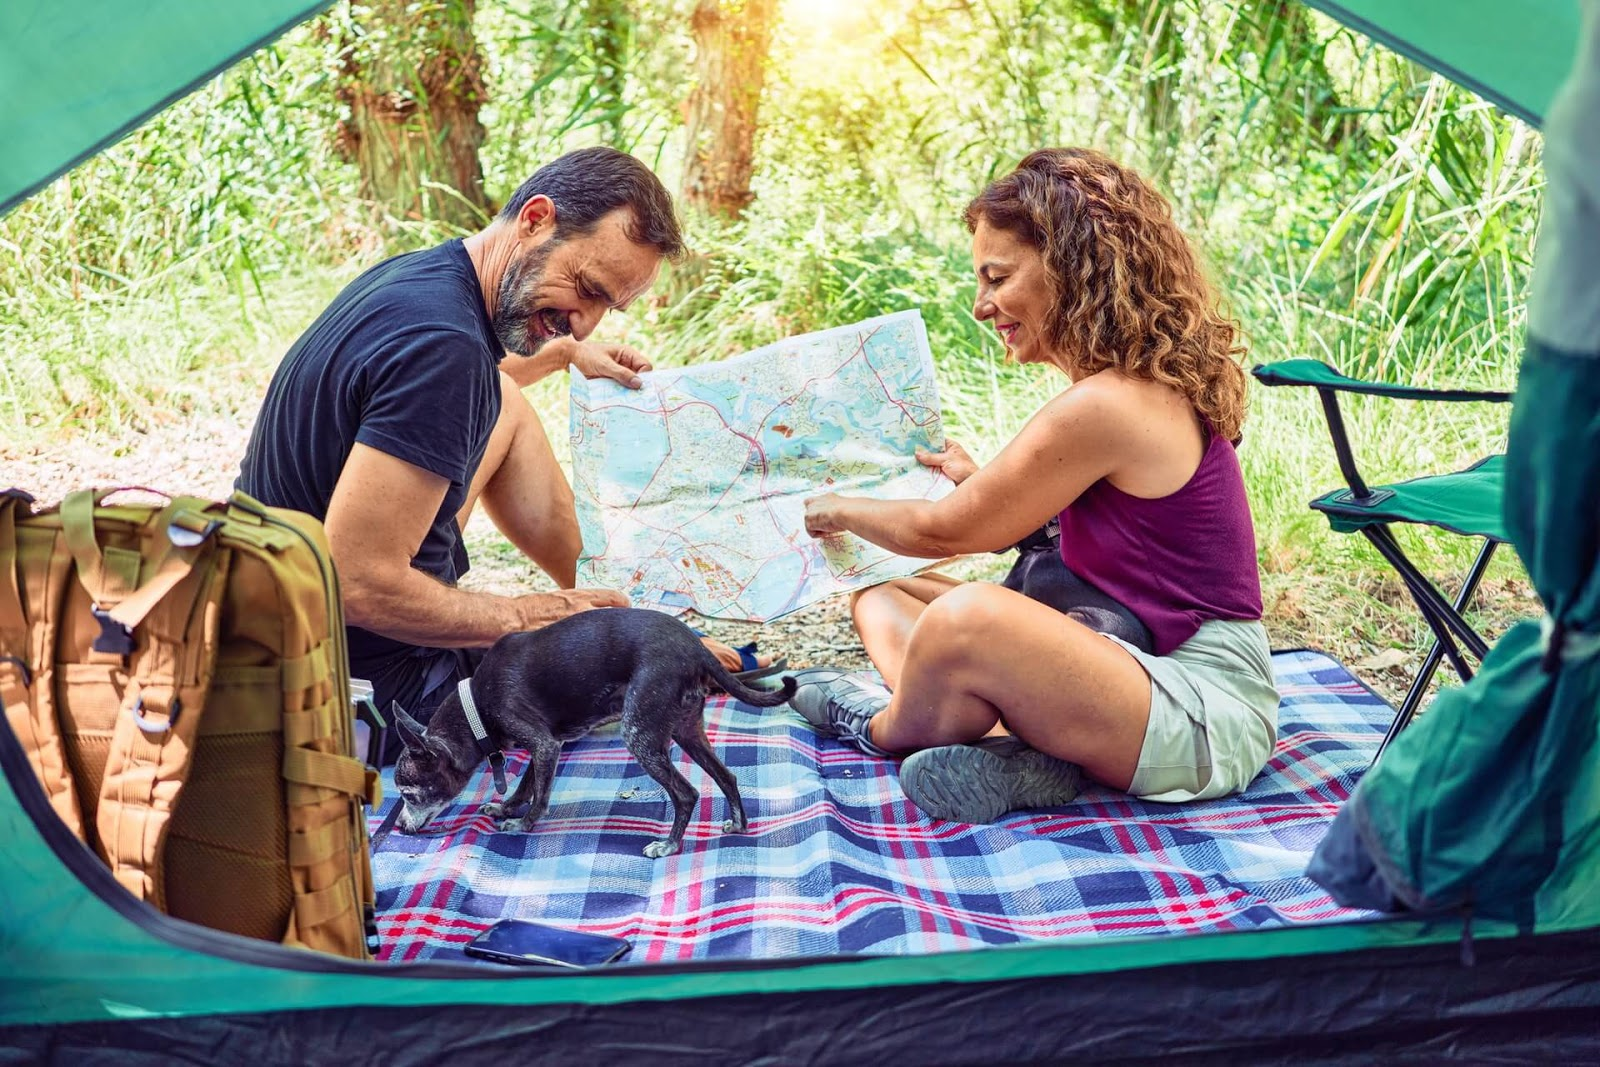 Two people sitting outside a tent holding a map with a dog by their side.